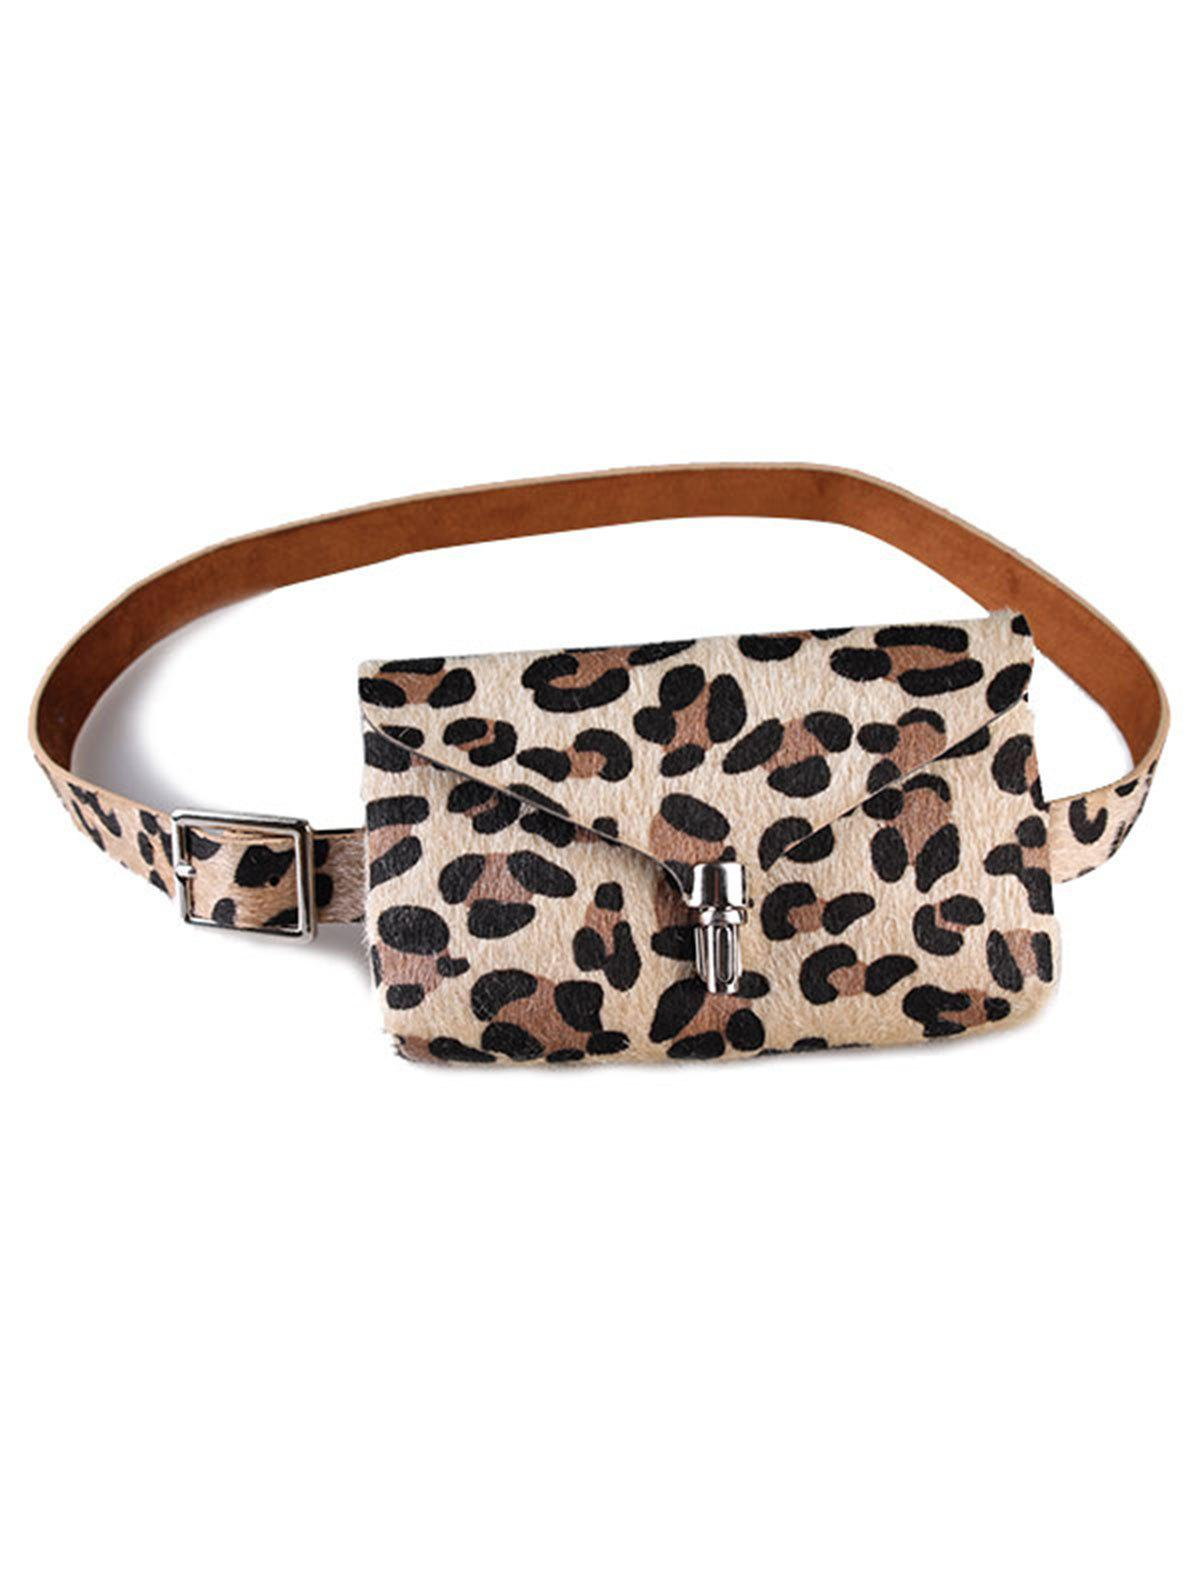 Hot Leopard Fanny Pack Faux Leather Belt Bag